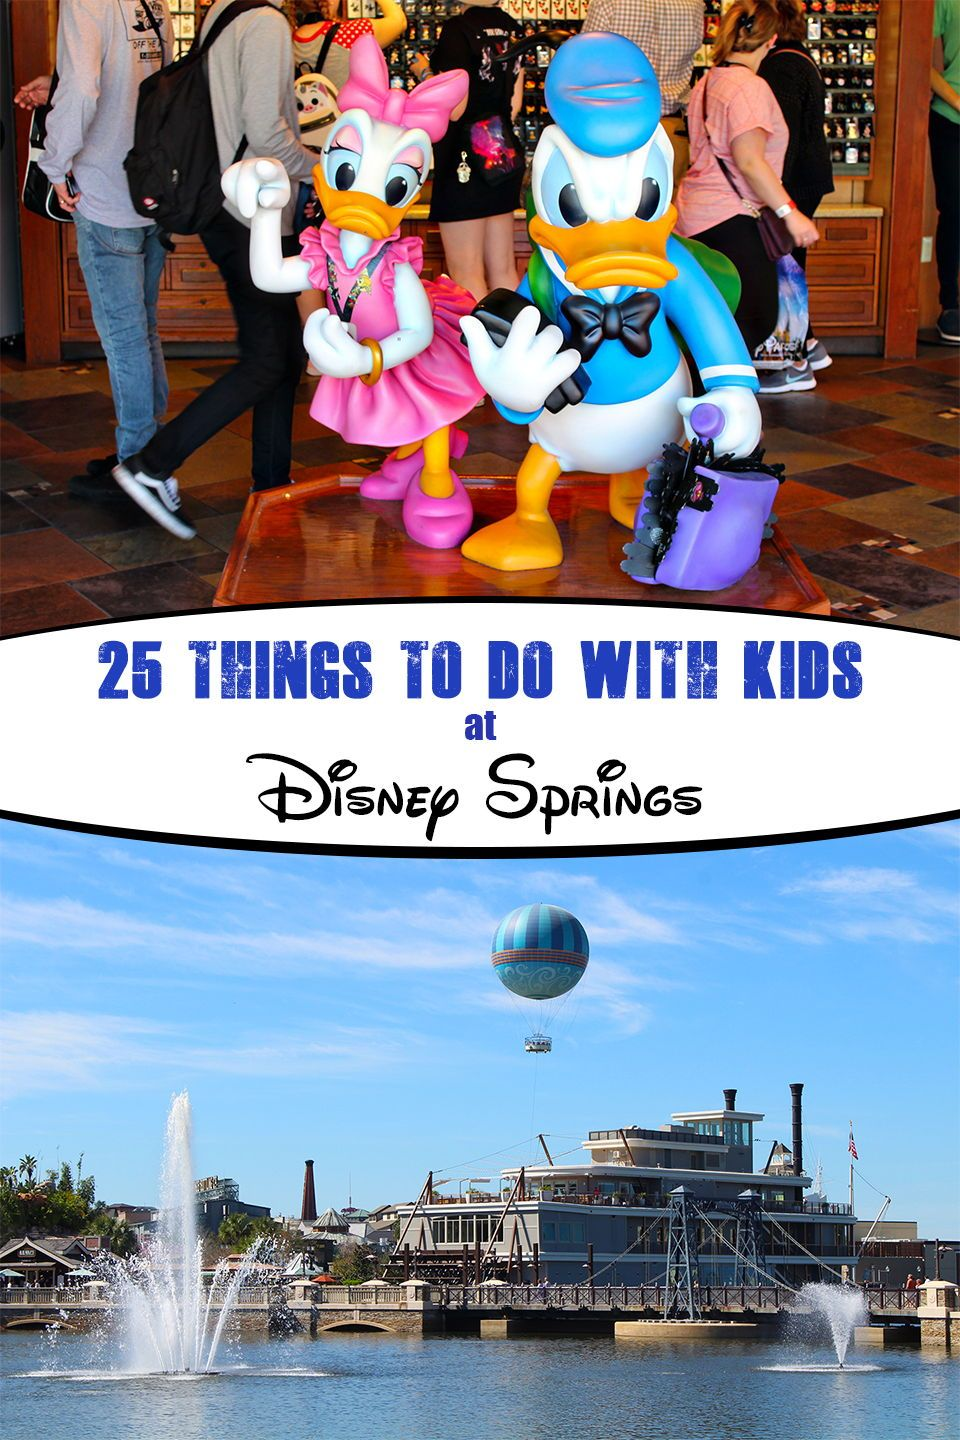 25 Things to do at Disney Springs with Kids Disney